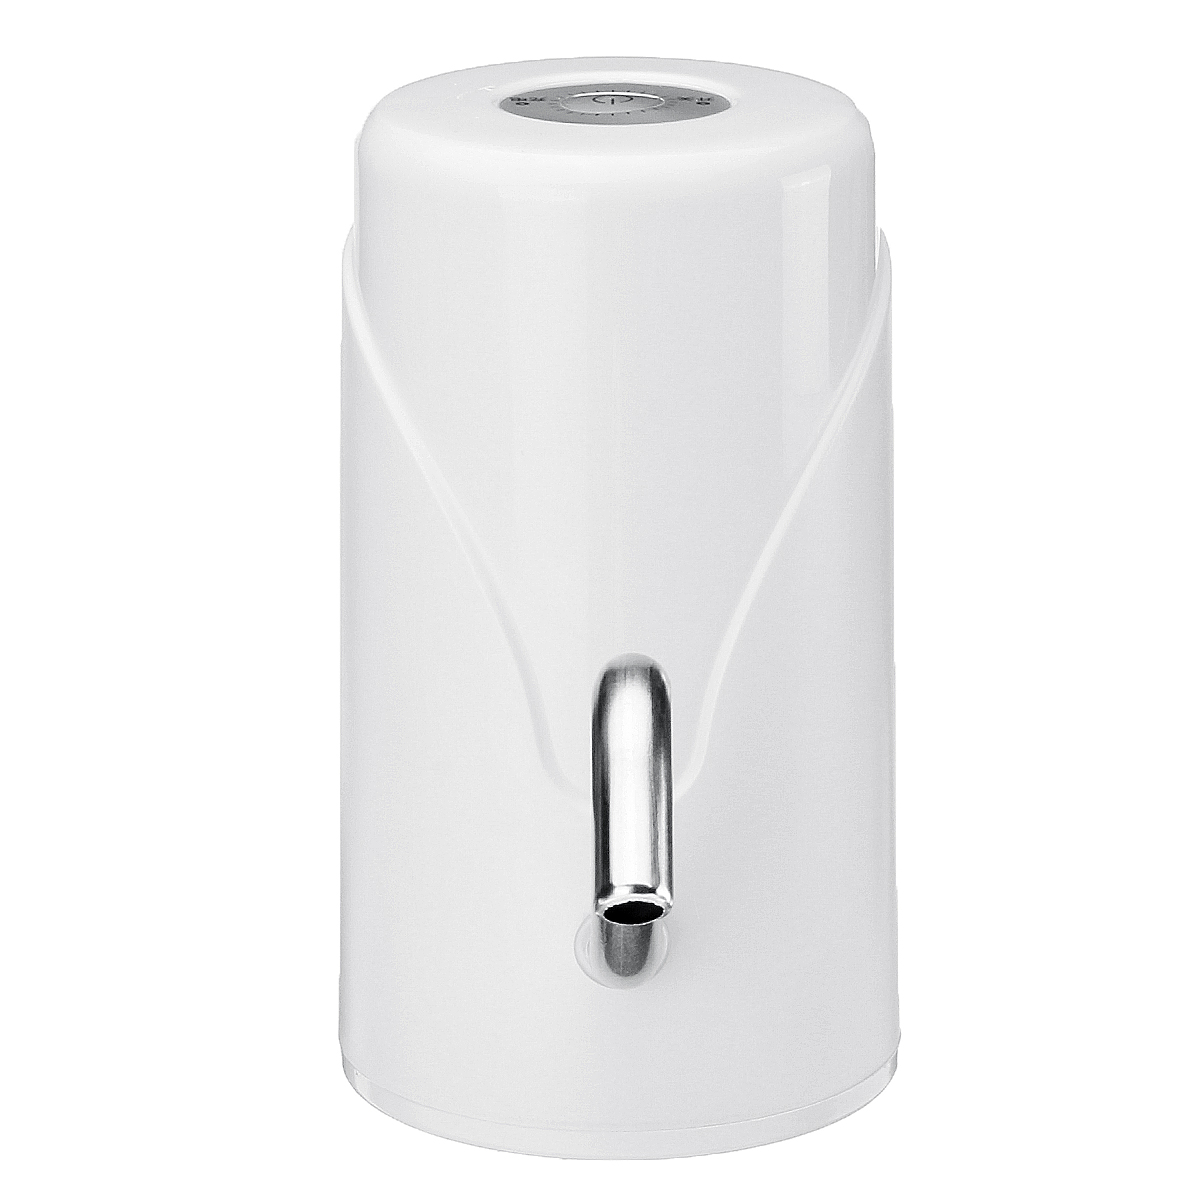 USB Rechargeable Automatic Water Bottle Pump Dispenser Drinking Water Bottle w/ Tube